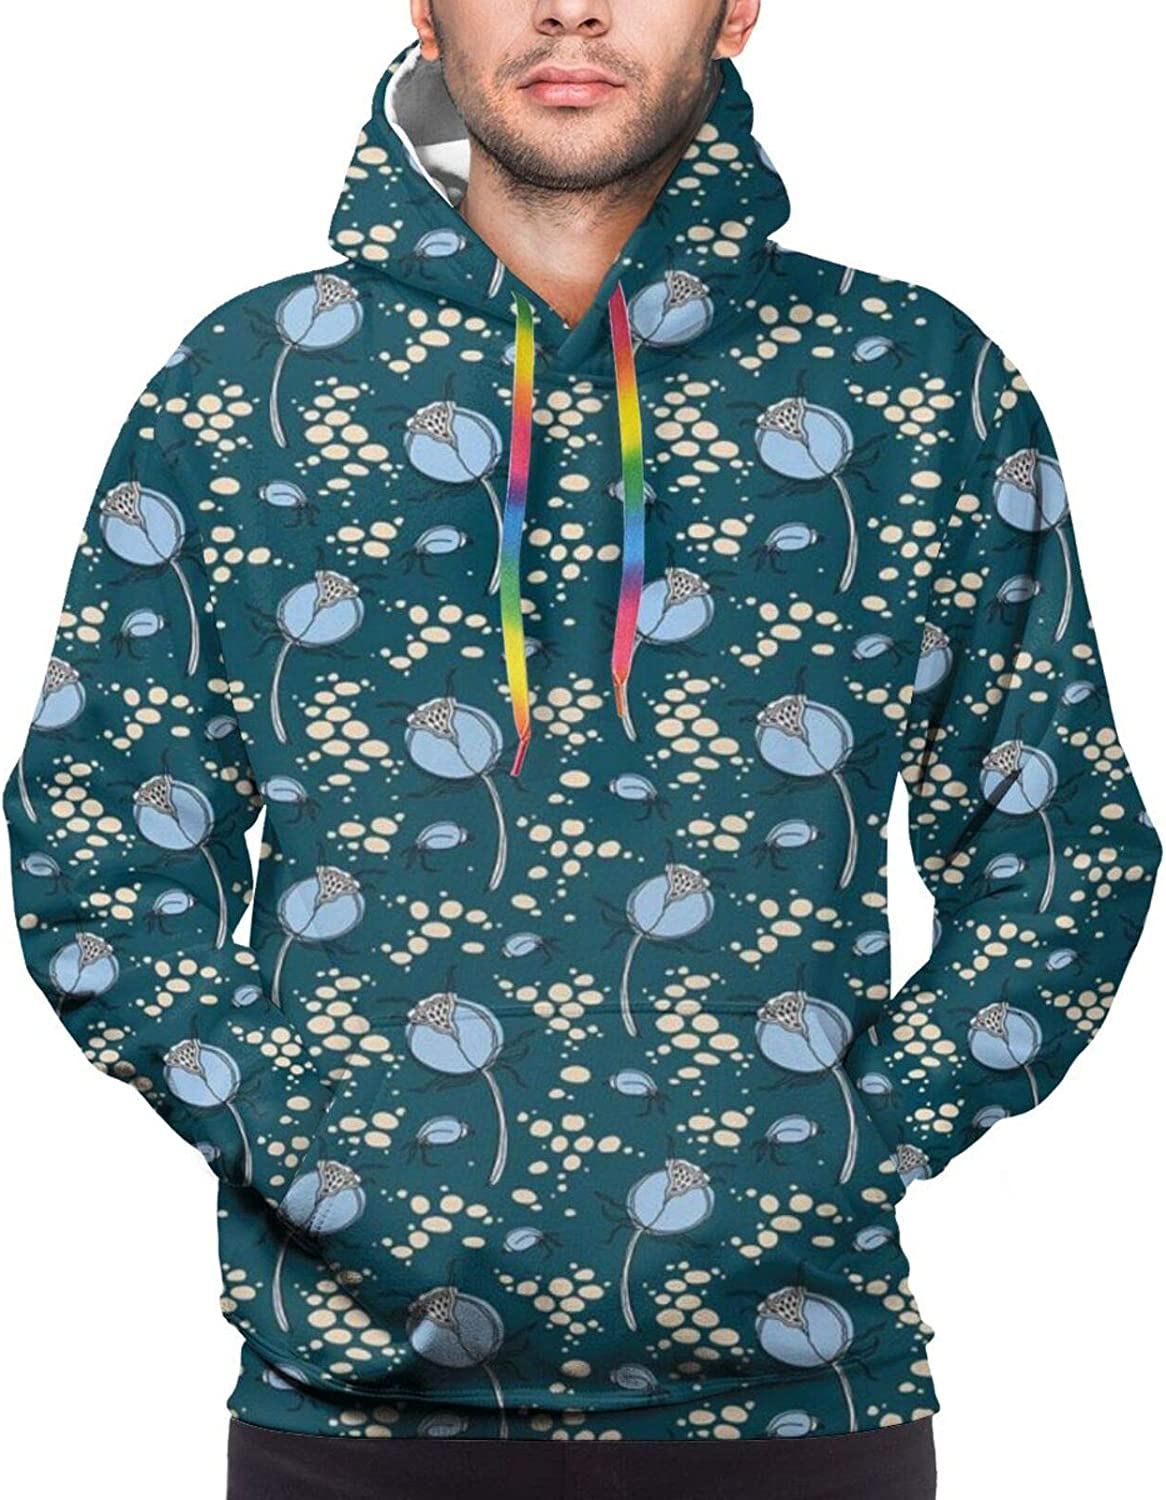 TENJONE Men's Hoodies Sweatshirts,Abstract Botany Inspired Pattern with Dog-Rose Buds,Small